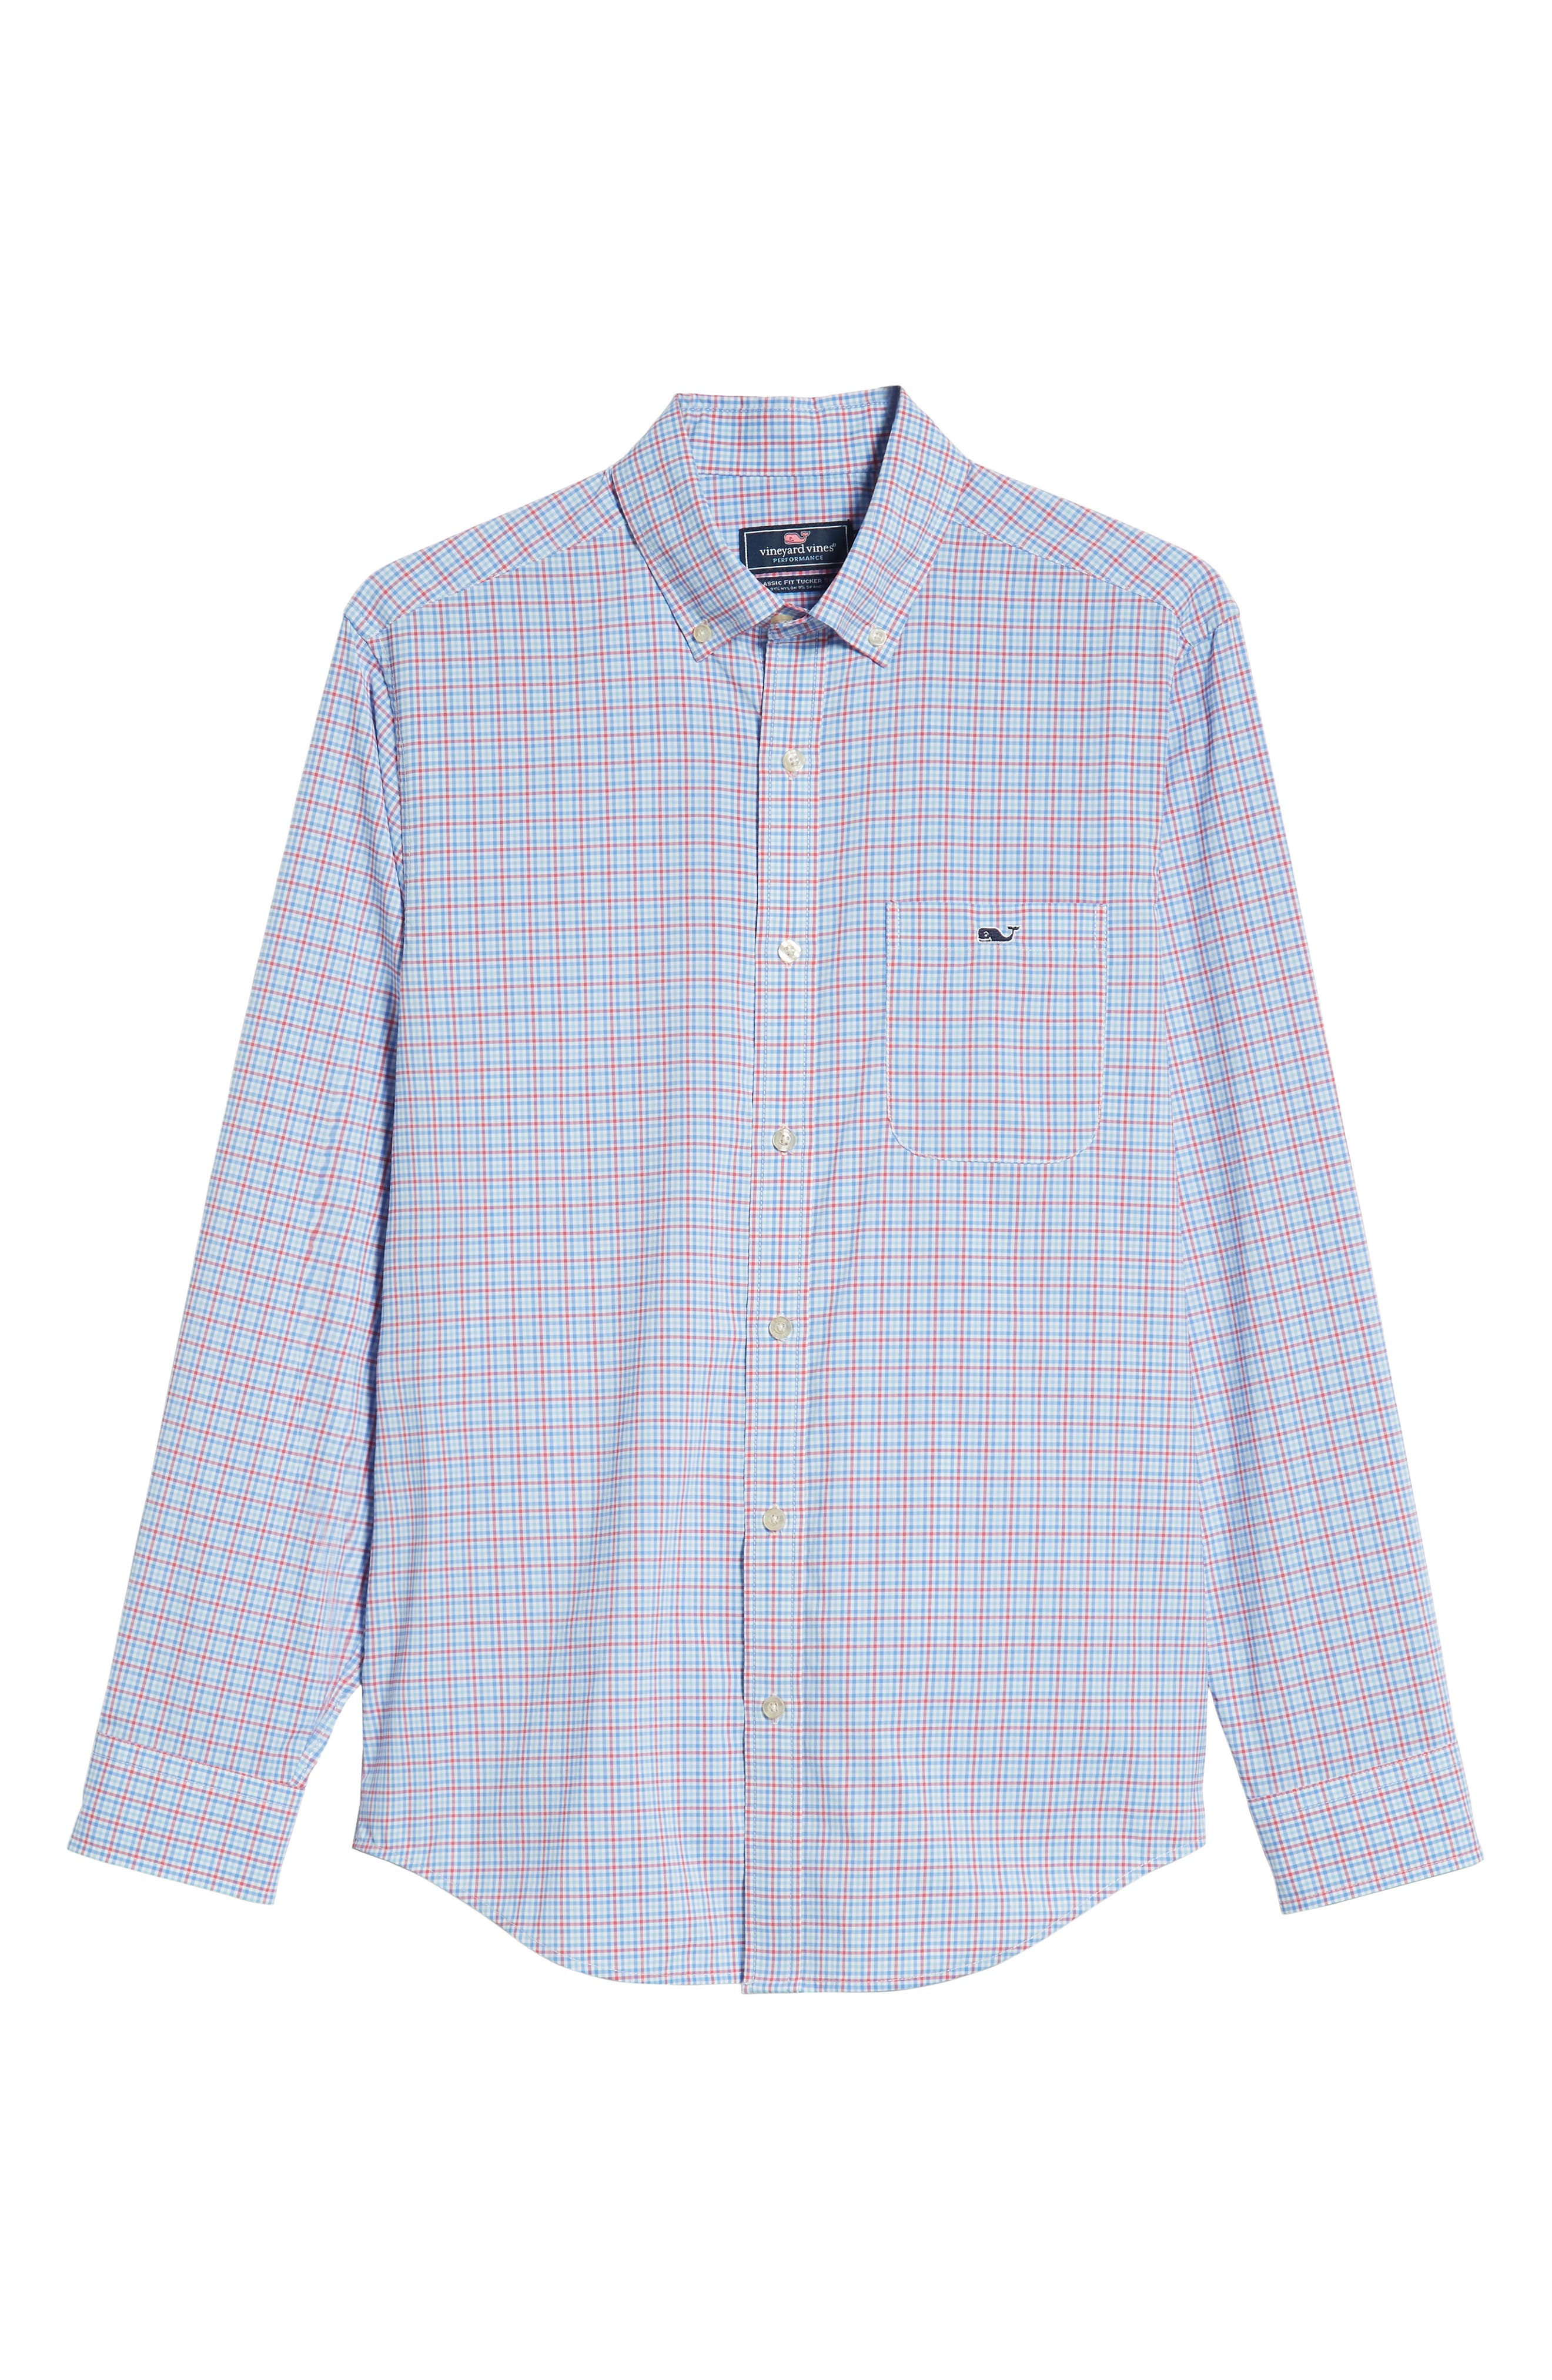 Boldwater Regular Fit Plaid Sport Shirt,                             Alternate thumbnail 5, color,                             SAILORS RED